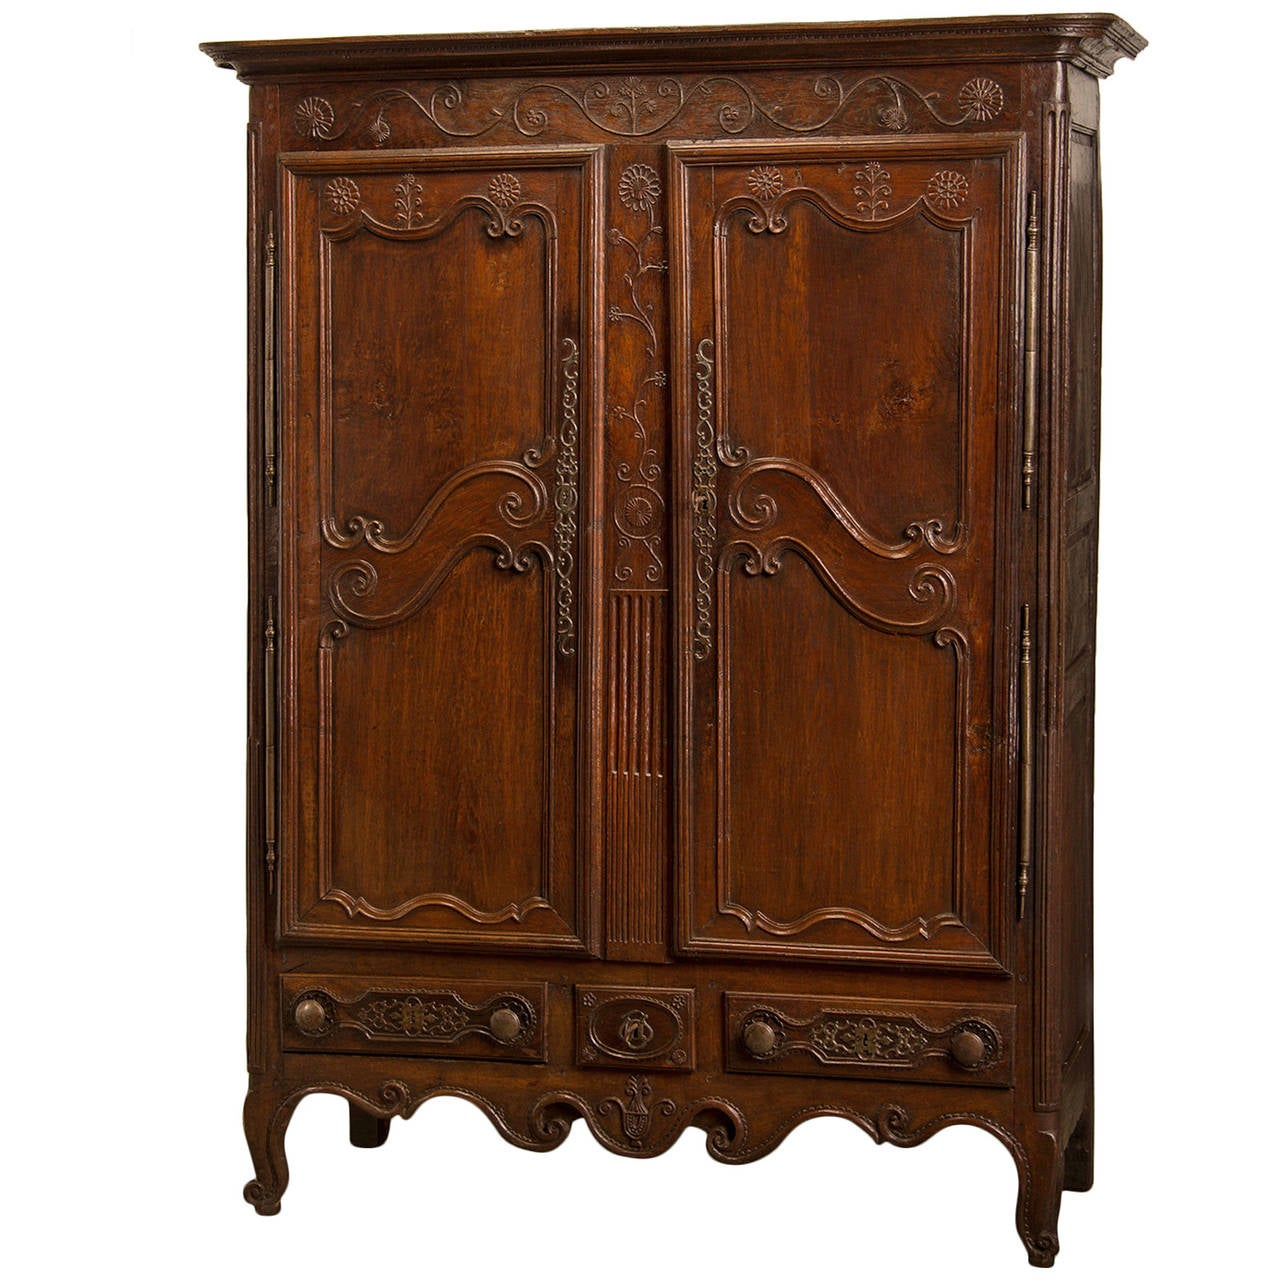 louis xvi period oak armoire original hardware france. Black Bedroom Furniture Sets. Home Design Ideas